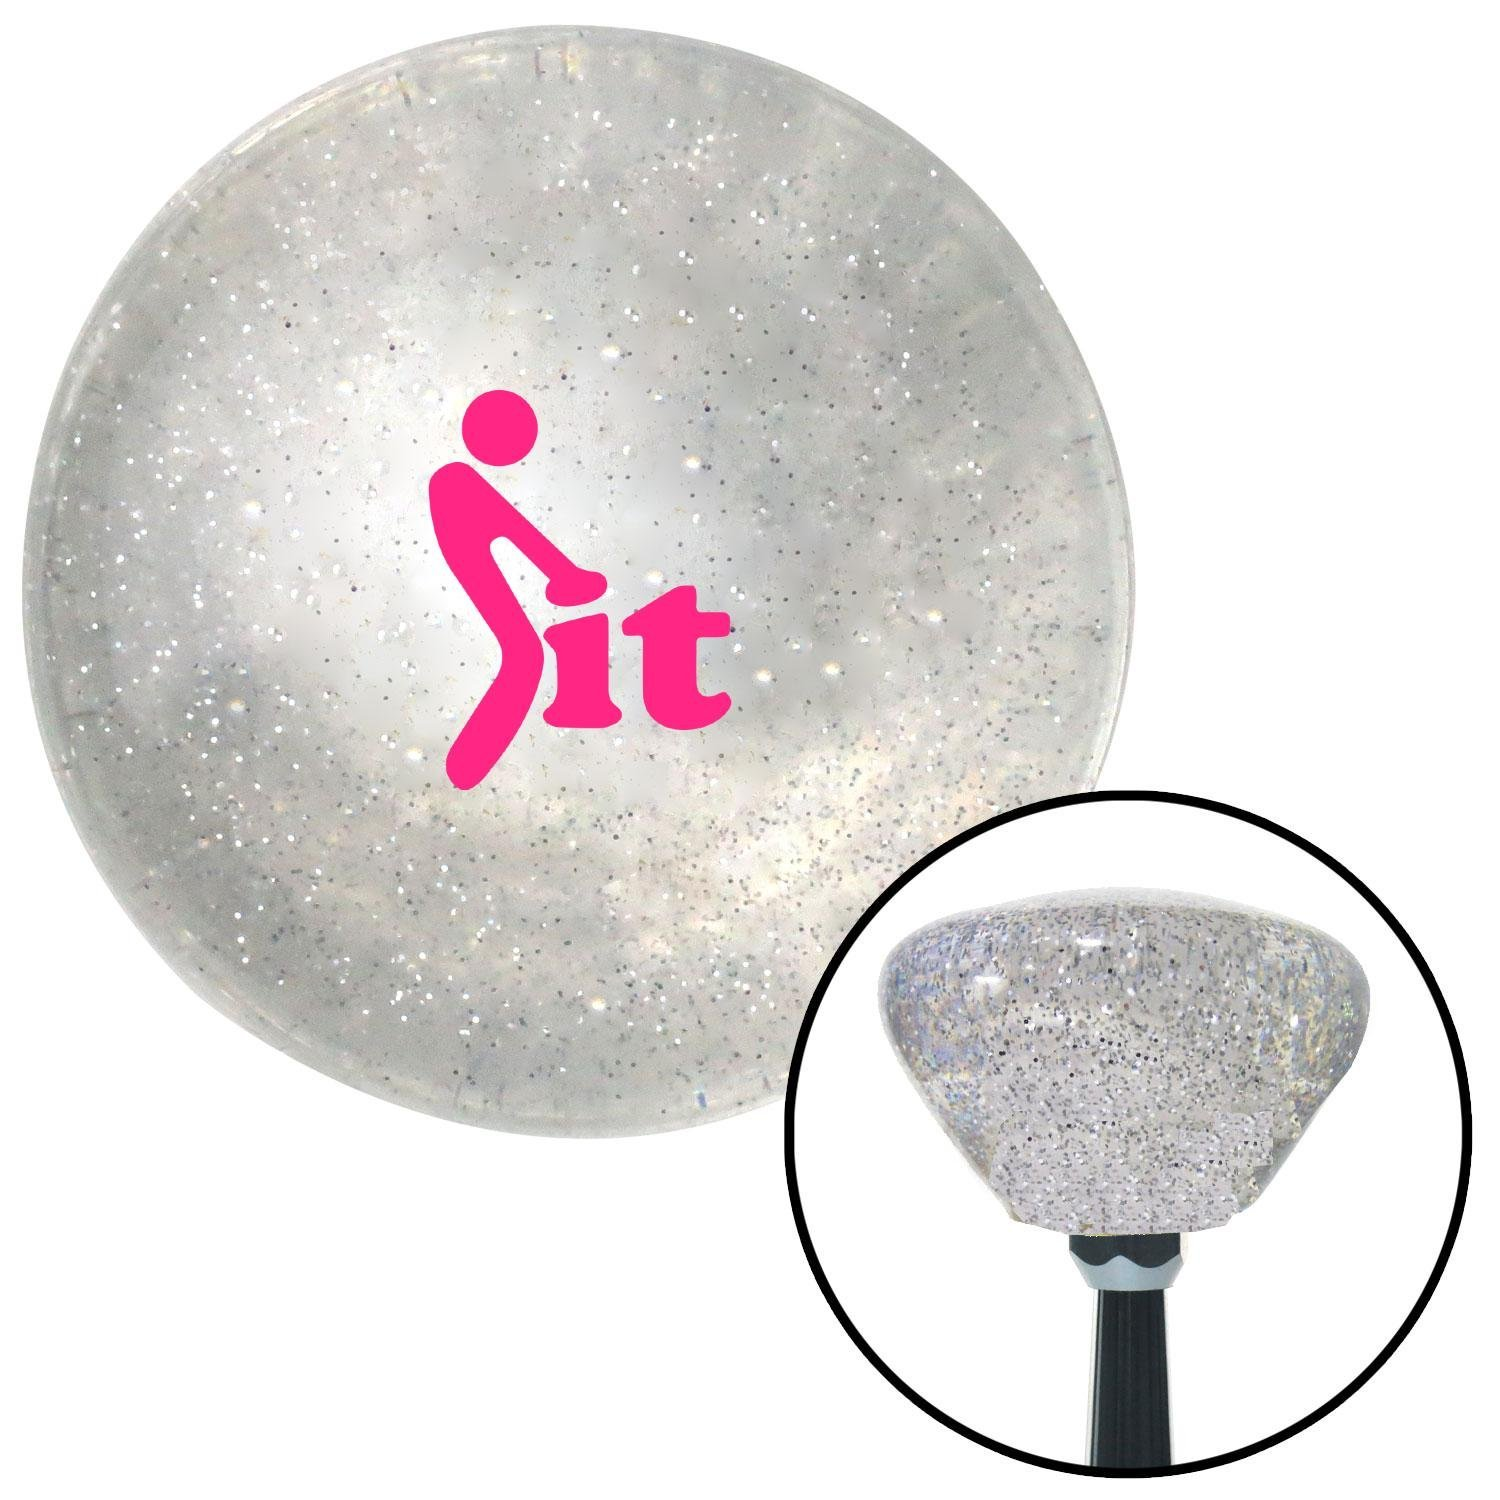 American Shifter 286246 Shift Knob Company Pink FCK It Icon Clear Retro Metal Flake with M16 x 1.5 Insert